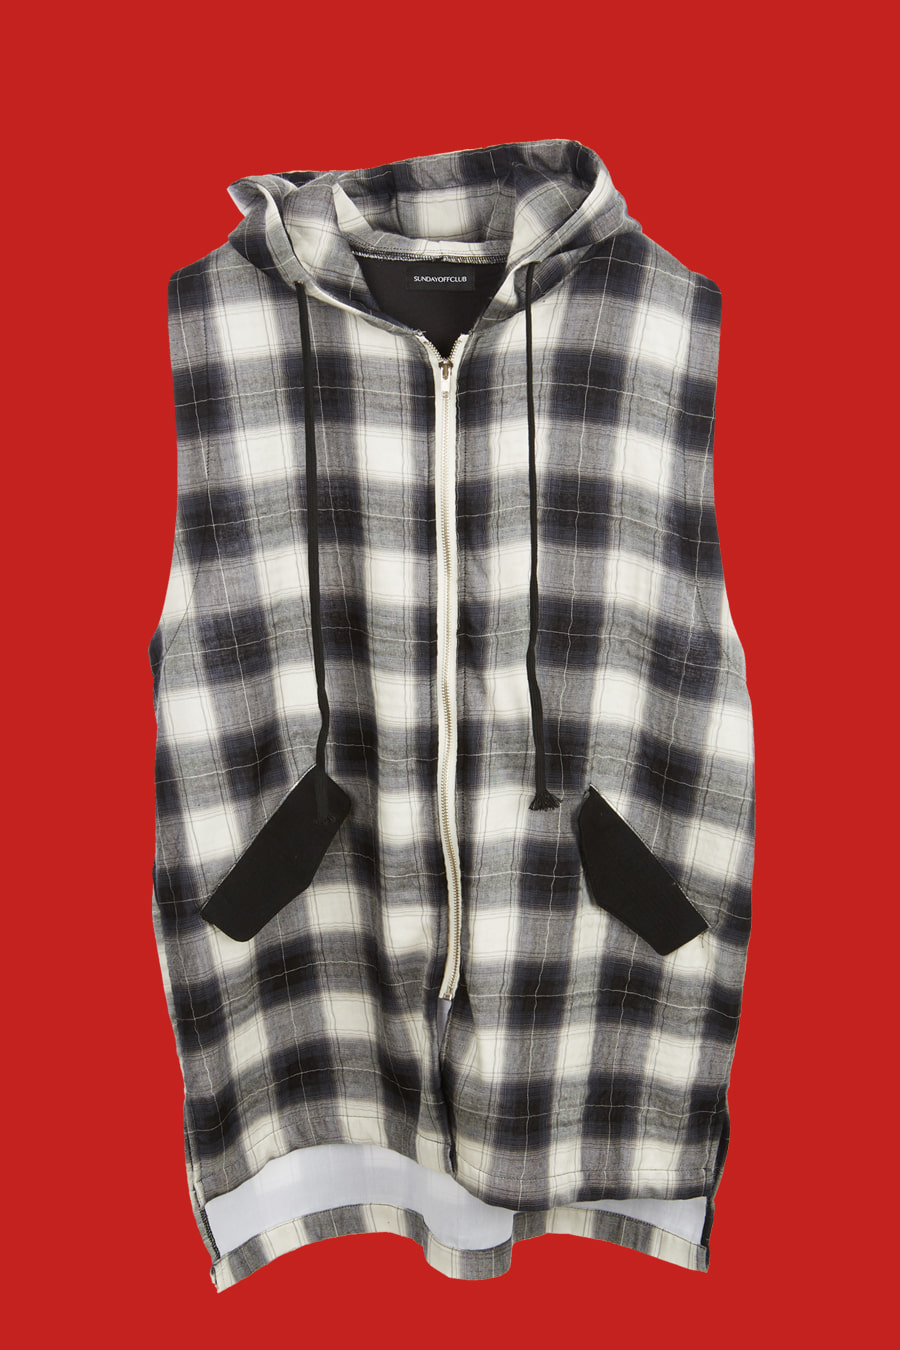 Bloodthirster Plaid Check hooded Shirt - Black